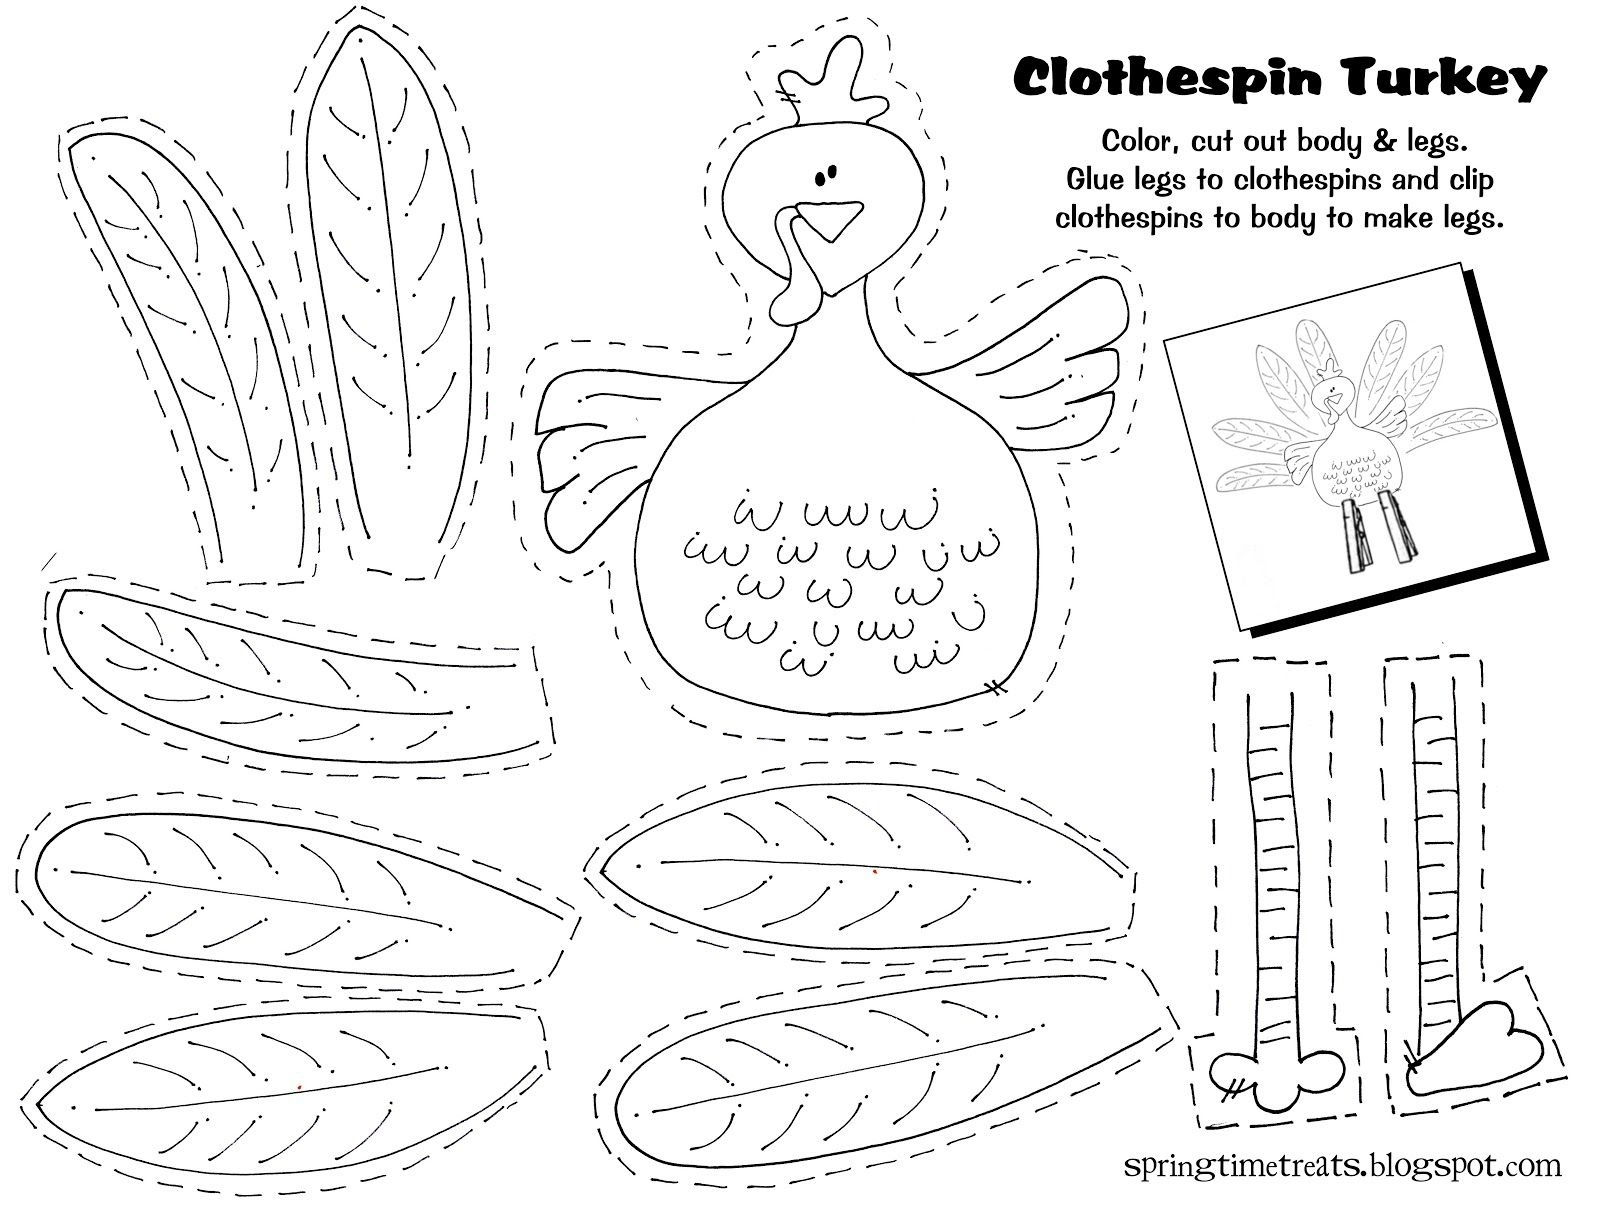 Free Printable - Clothespin Turkey. Easy Craft Idea For The Kids - Free Printable Turkey Craft